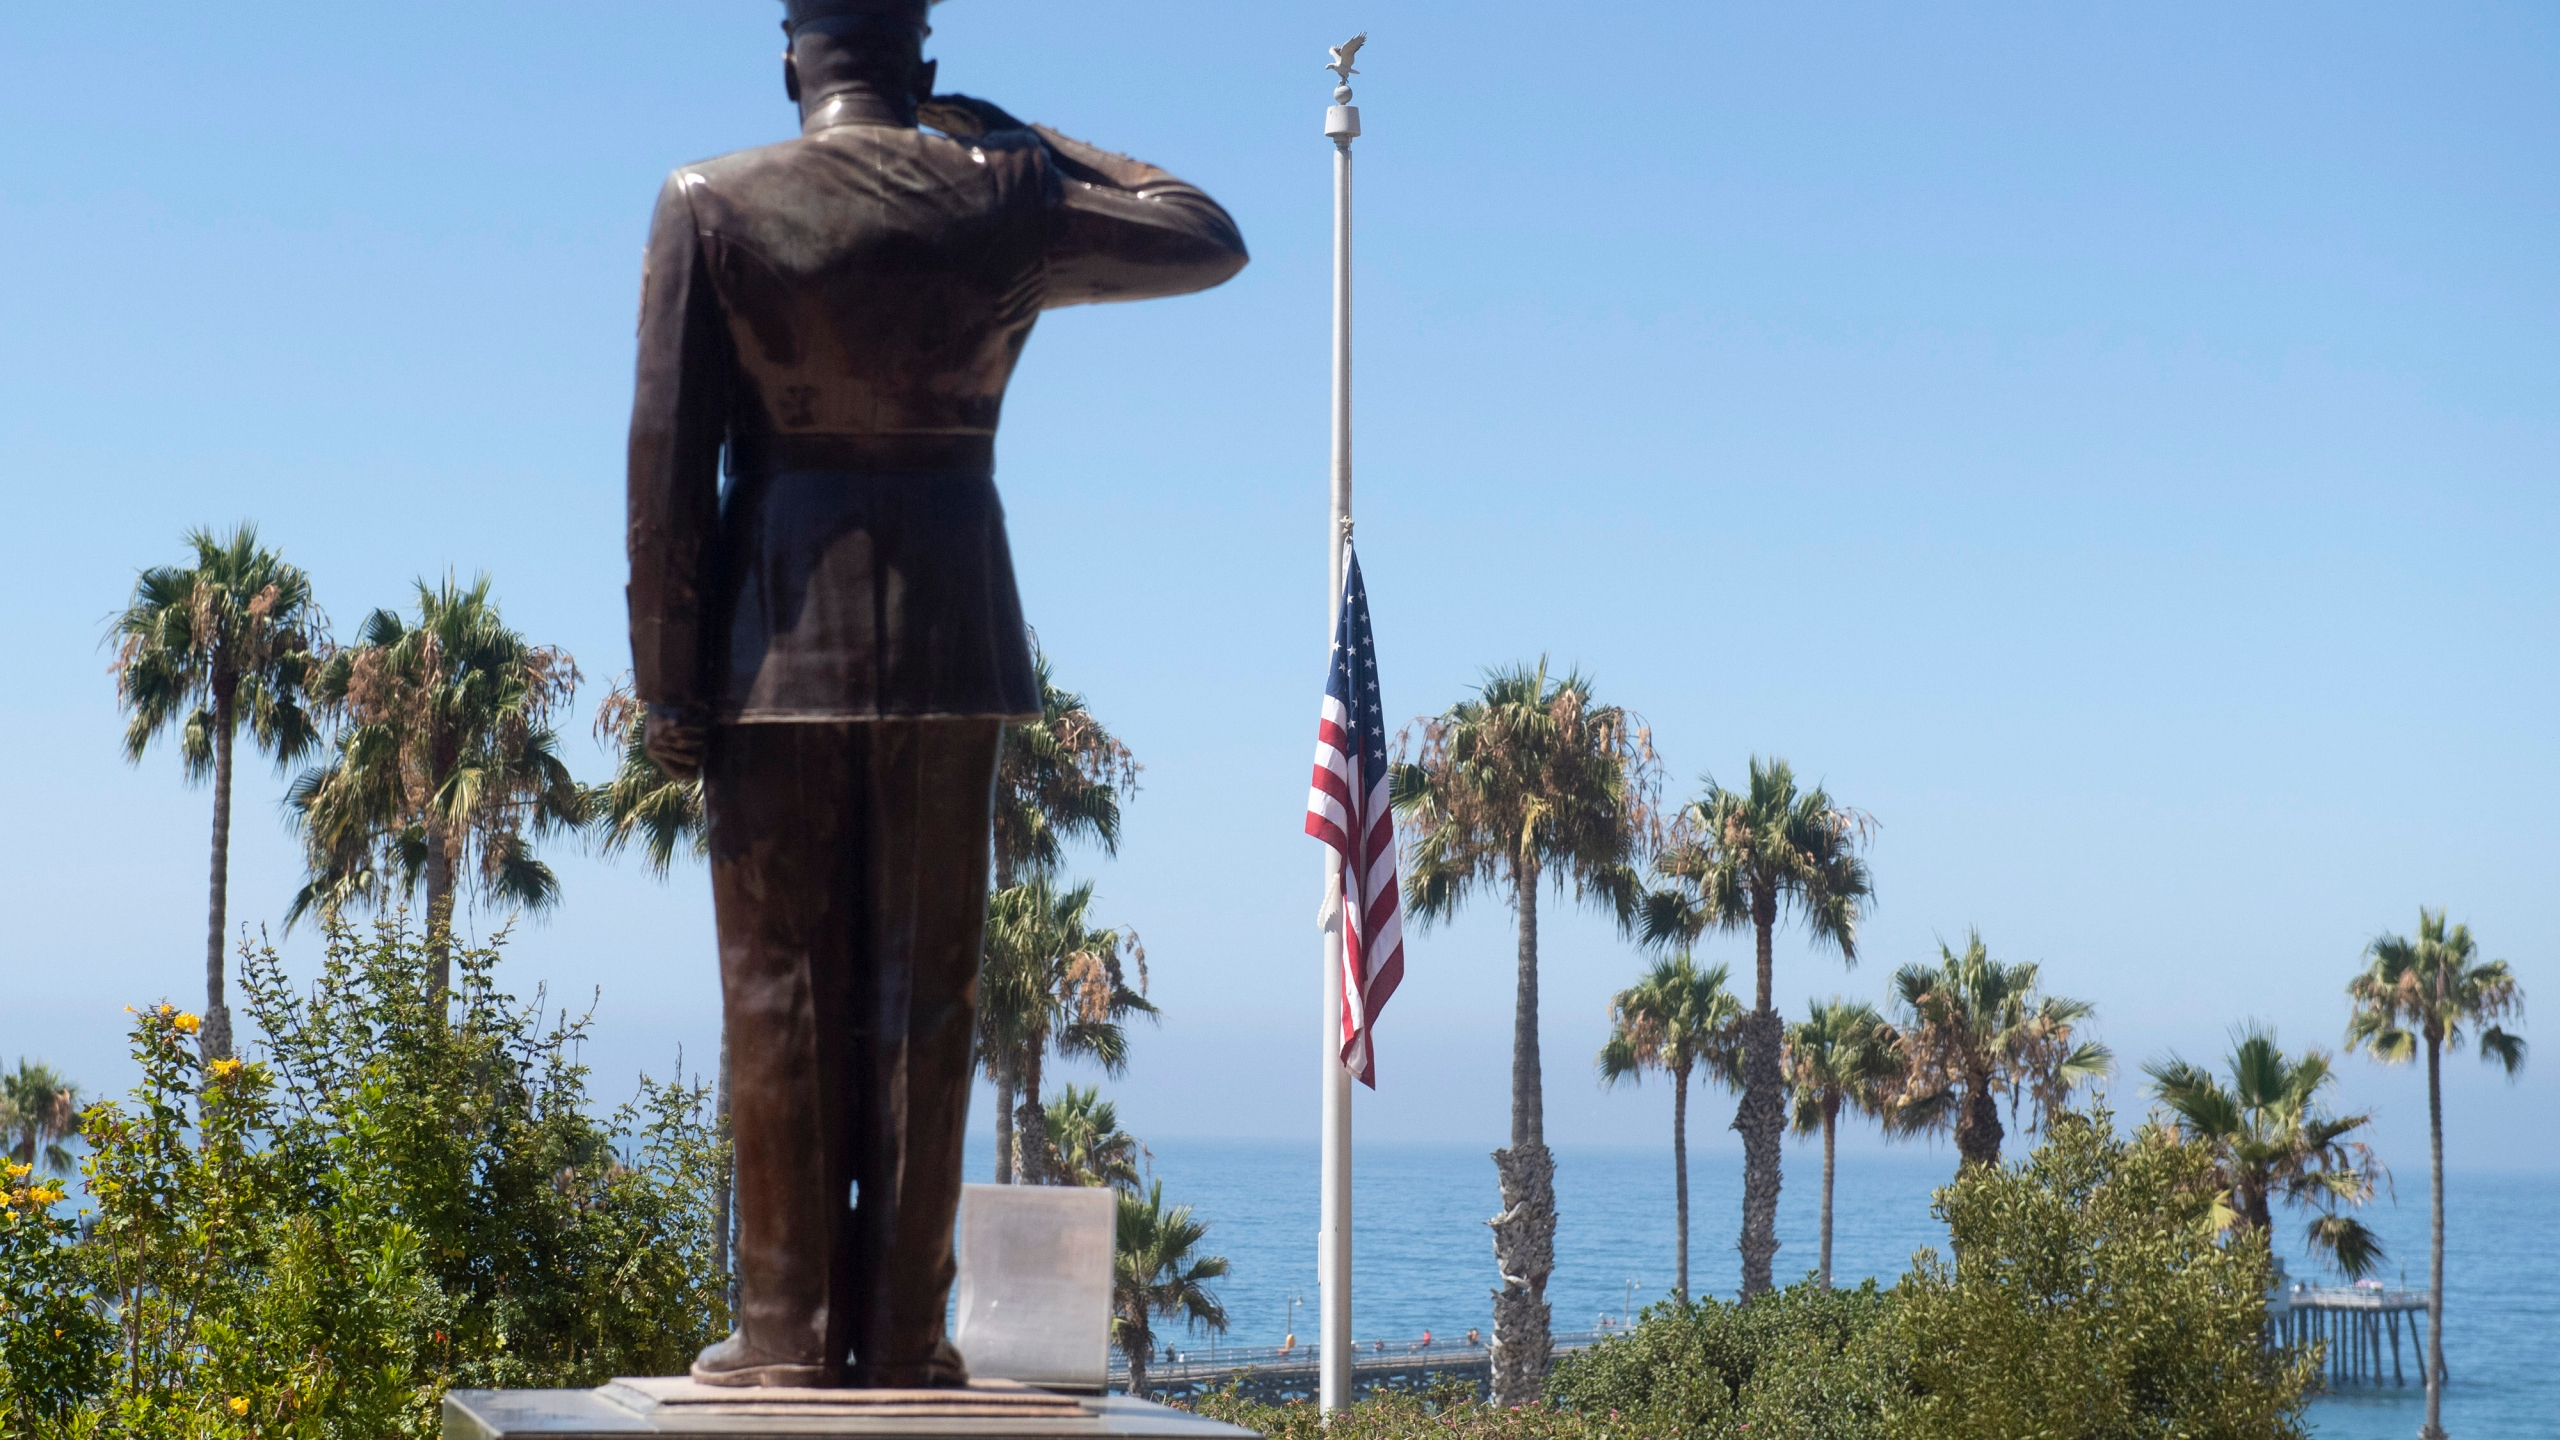 (The U.S. flag was lowered to half-staff at Park Semper Fi in San Clemente on July 31, 2020. (Paul Bersebach/The Orange County Register via AP, file)